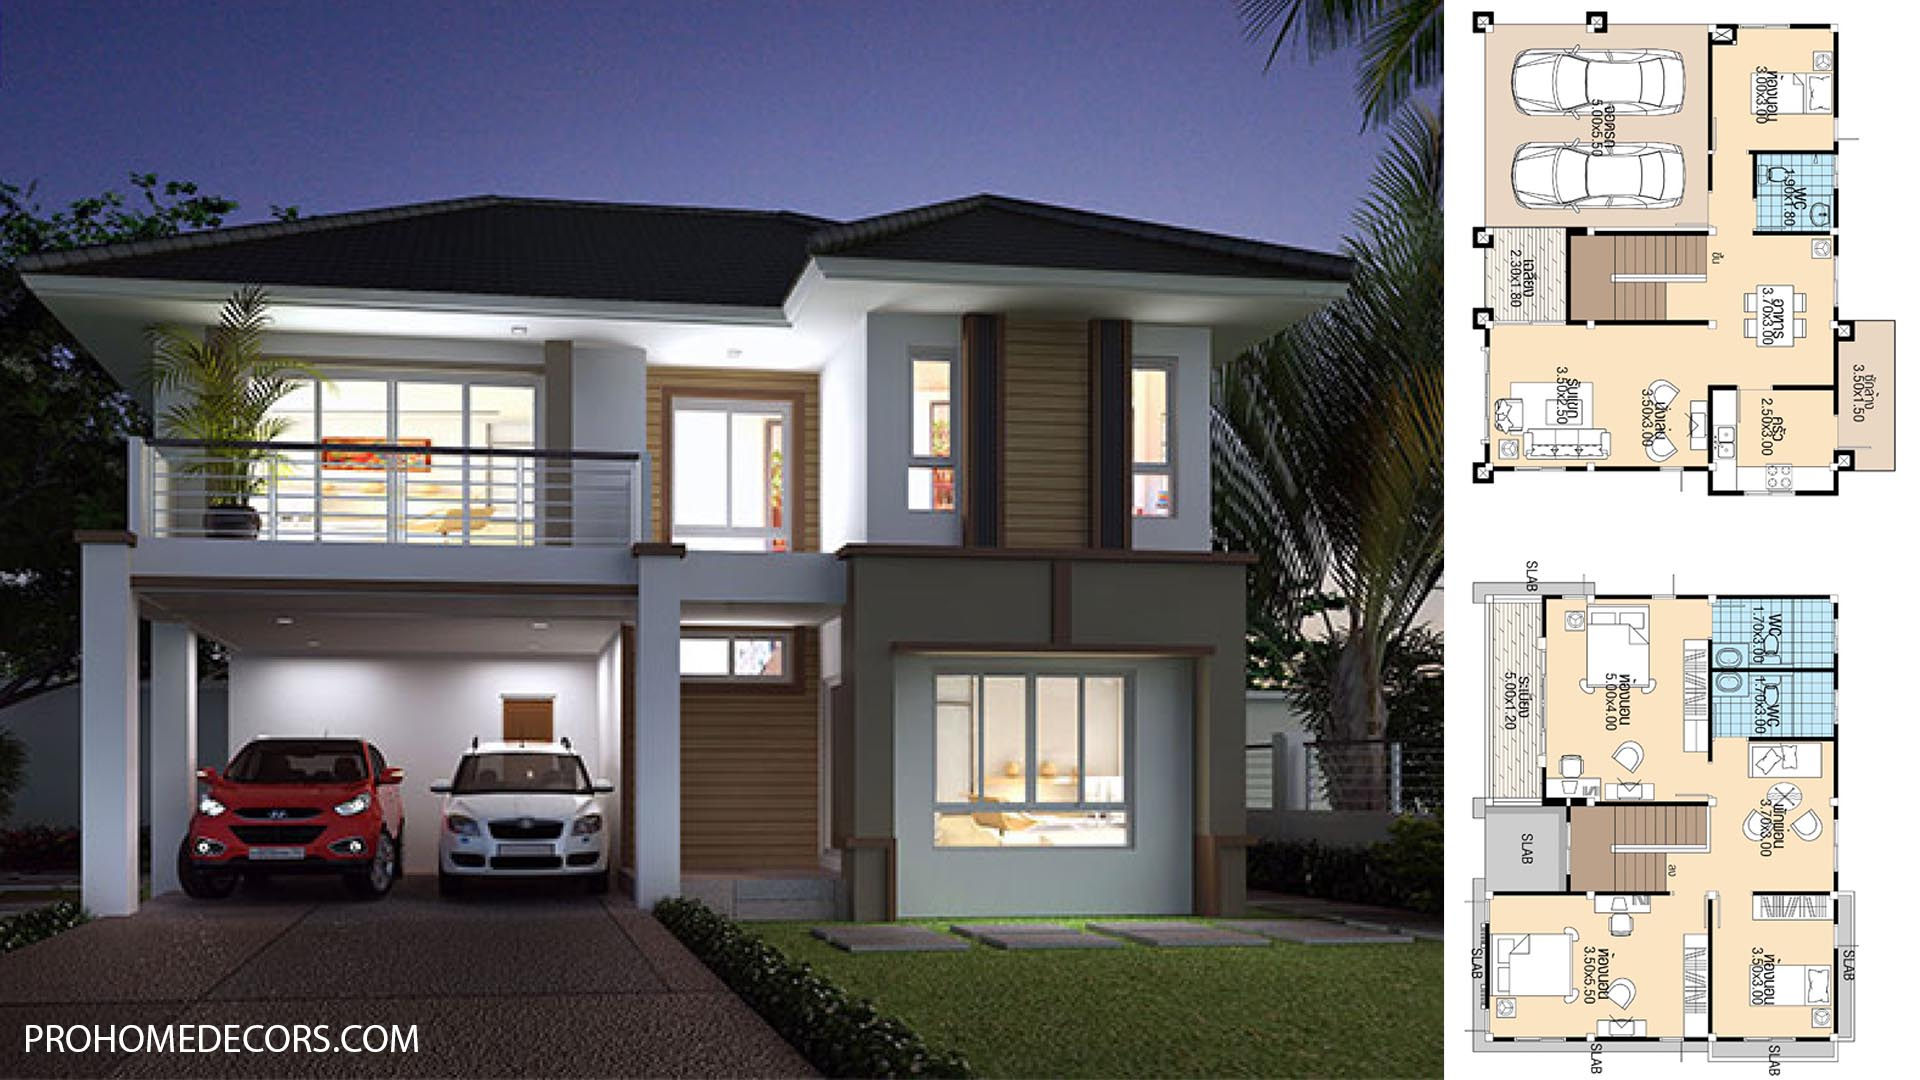 House Plans 11.3×8.5 with 4 Bedrooms